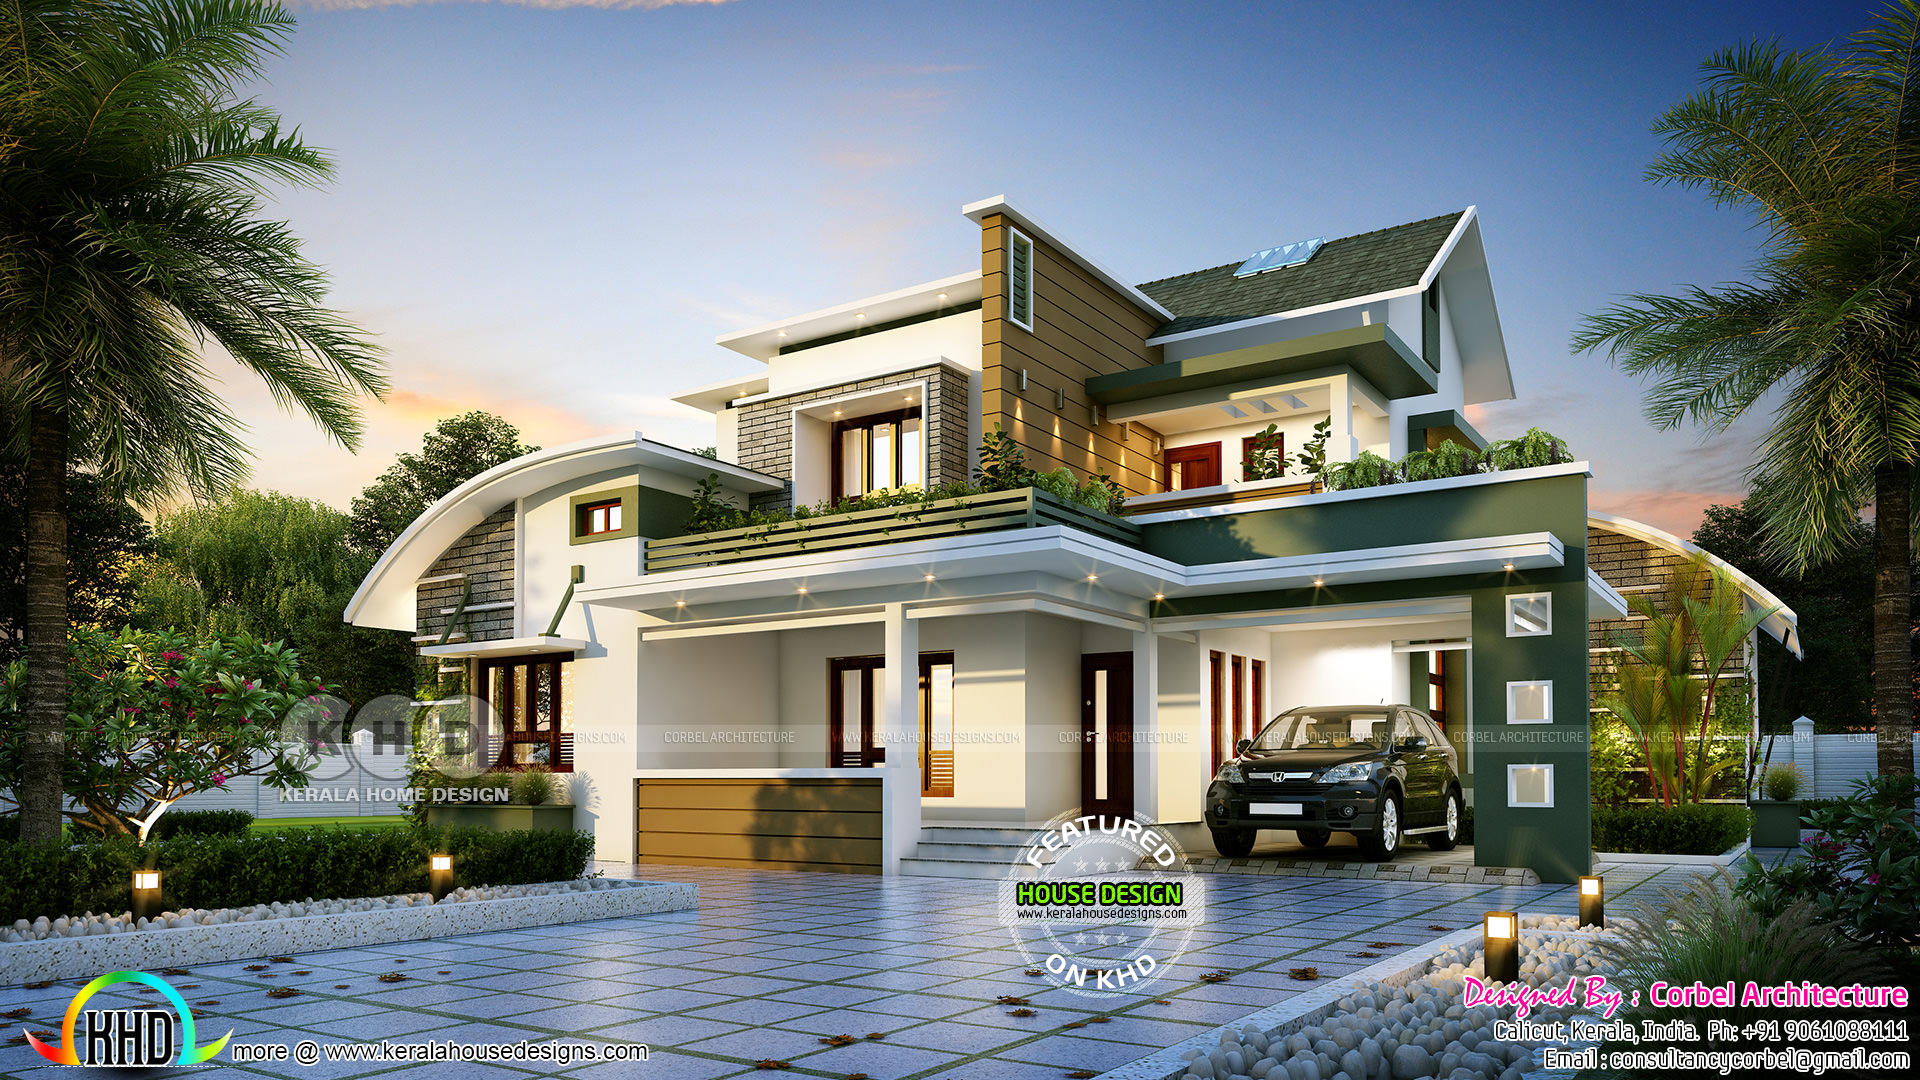 Attractive 4 Bedroom Curved Roof Mix Contemporary Home Part - 3: 2771 Sq-ft 4 Bedroom Curved Roof Mix Contemporary Home